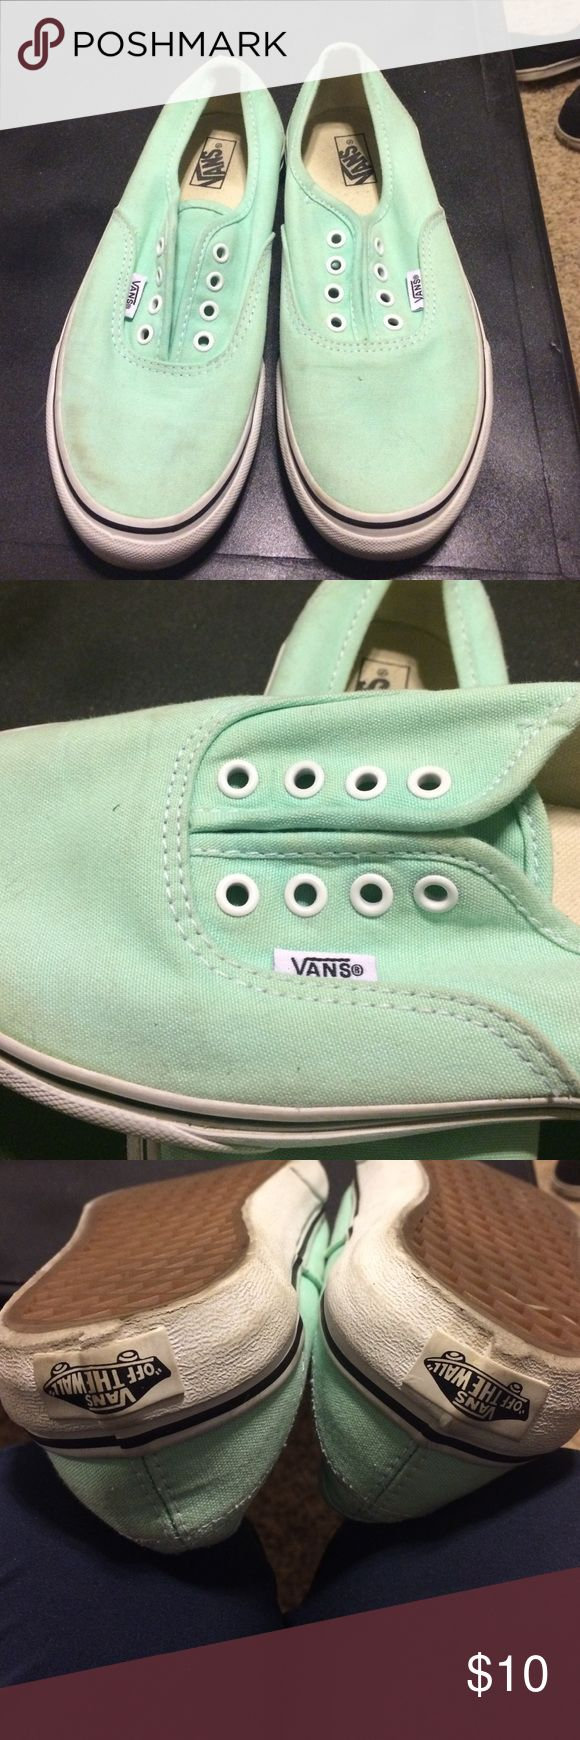 Vans mint green used kids size 4 Mint green vans size kids 4. Used but in good condition. New laces included. Vans Shoes Sneakers